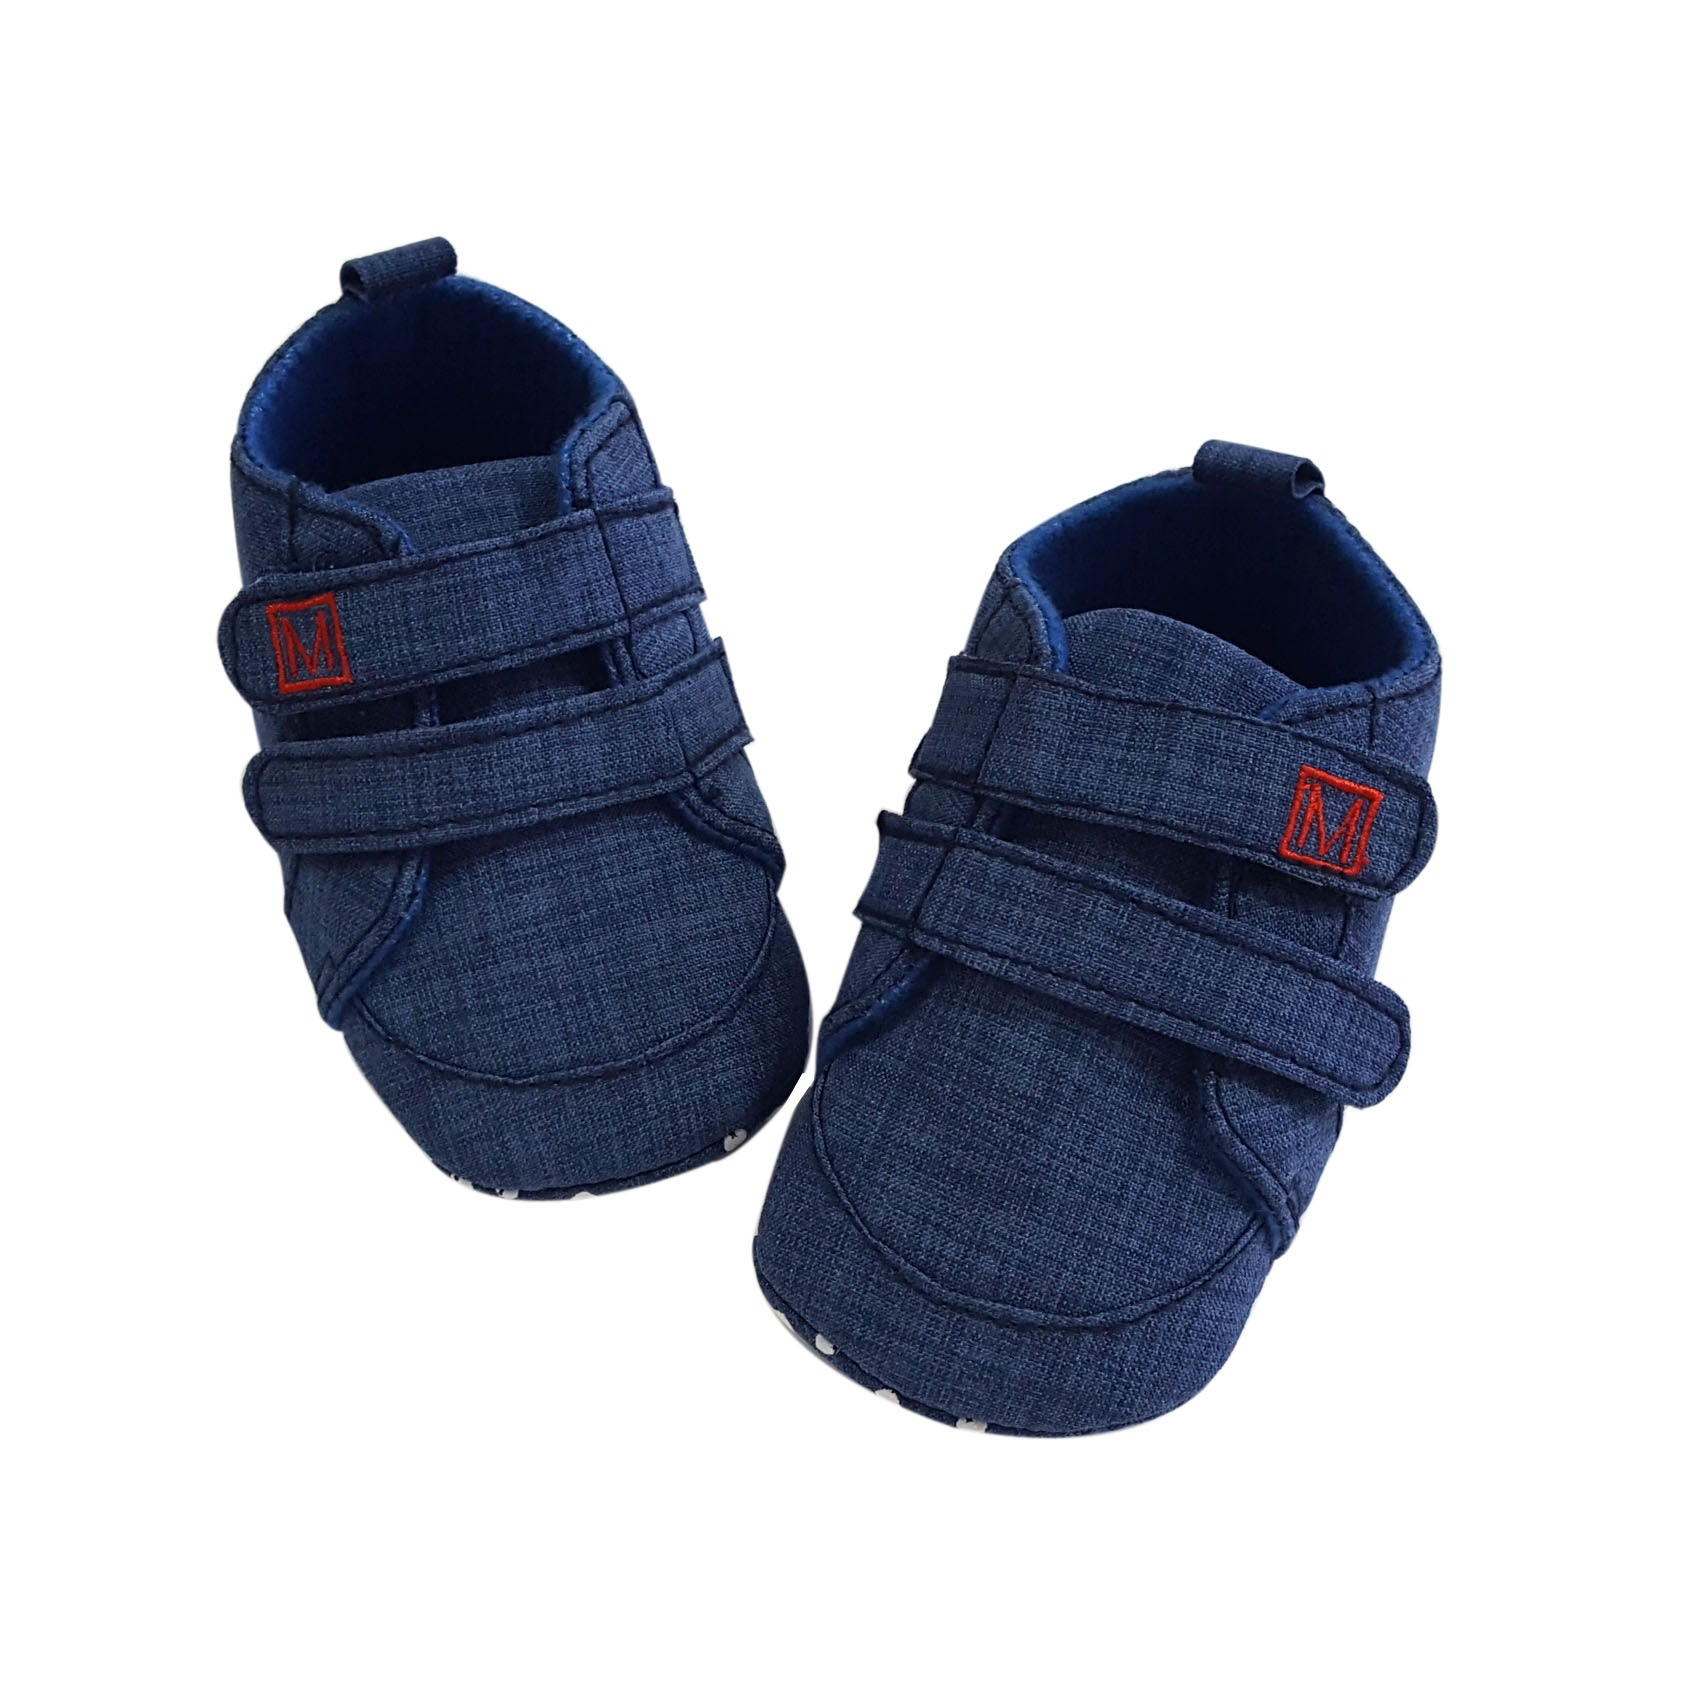 Magnus (Pre-Walker Baby Shoes) - Blue Special Offer